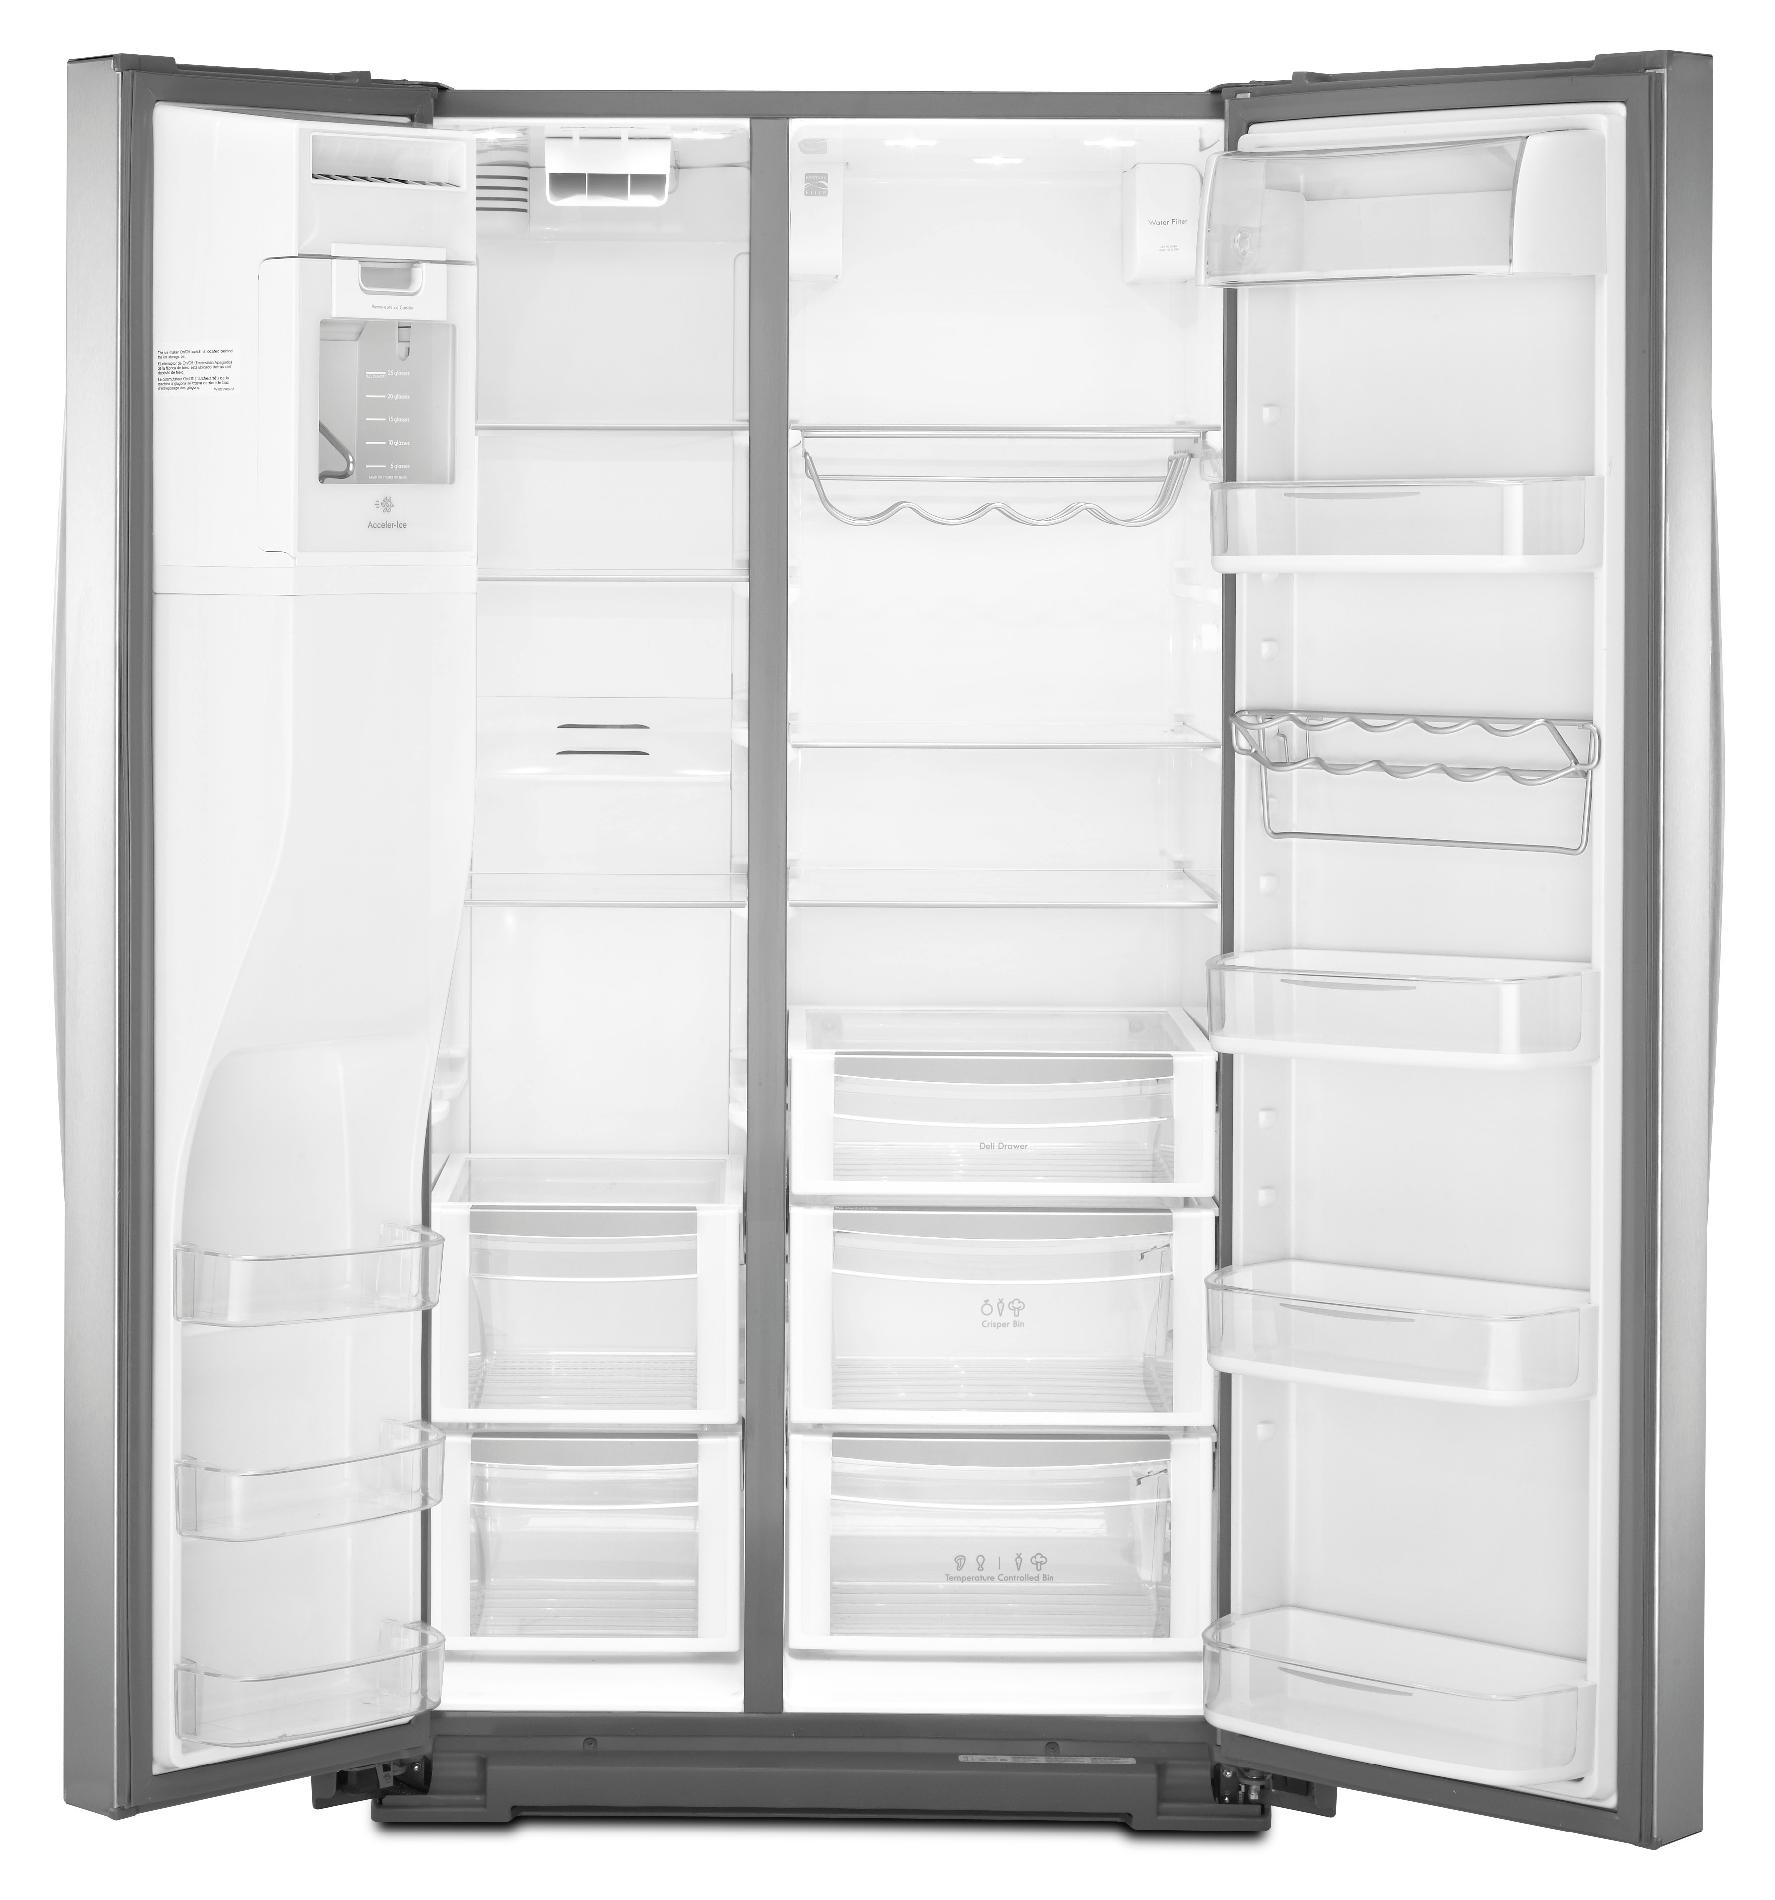 Kenmore Elite 29.8 cu. ft. Side-by-Side Refrigerator - Stainless Steel